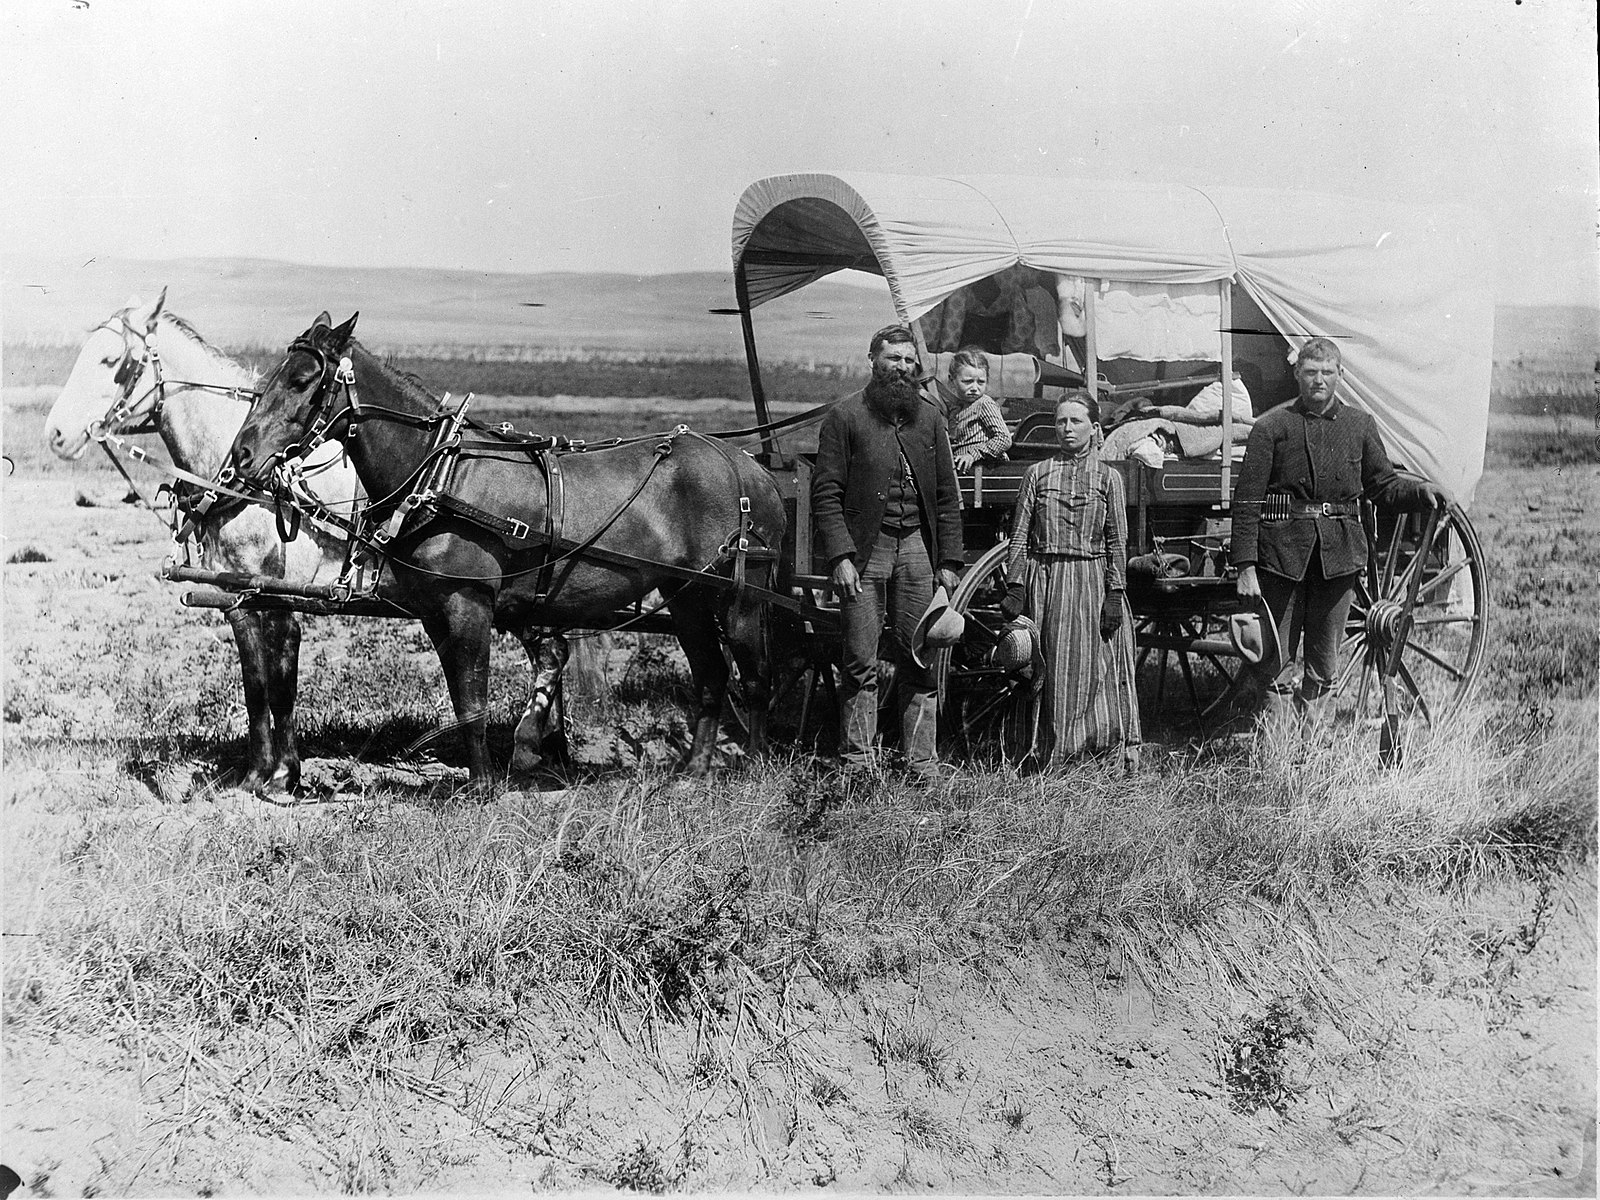 1600px-photograph_of_a_family_with_their_covered_wagon_during_the_great_western_migration2c_1866_-_nara_-_518267